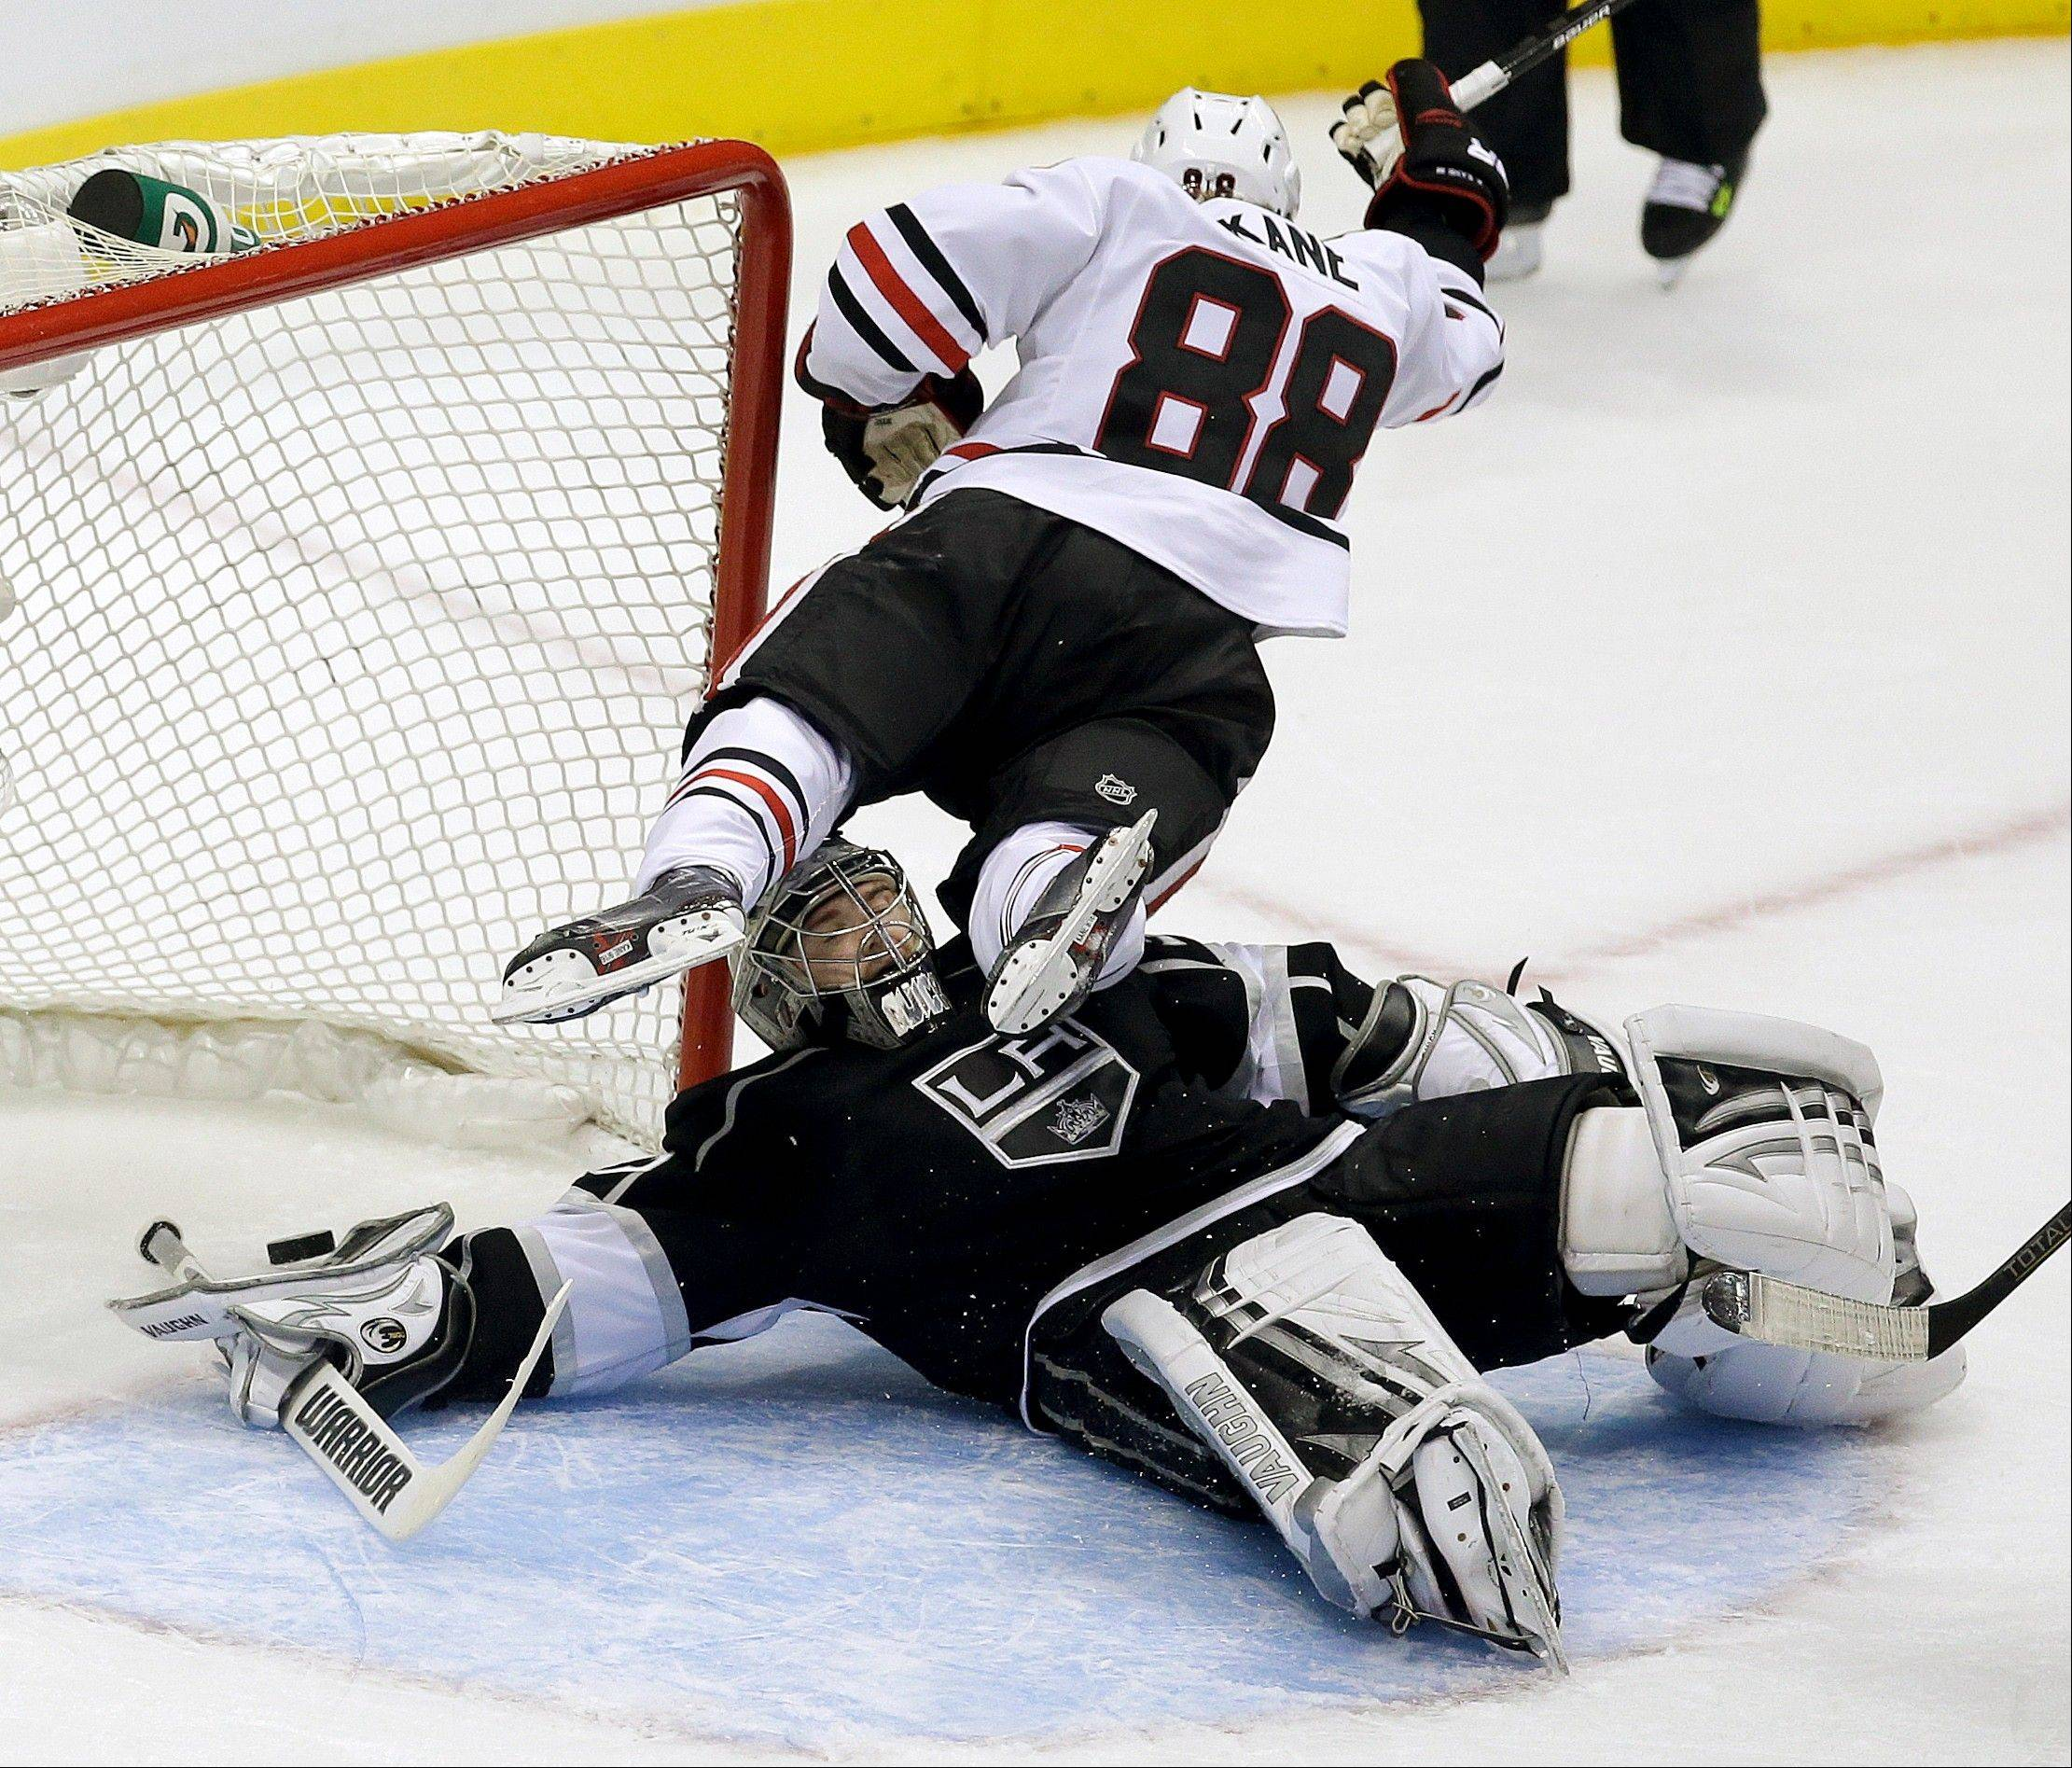 Chicago Blackhawks right wing Patrick Kane scores past Los Angeles Kings goalie Jonathan Quick during the second period in Game 4 of the NHL hockey Stanley Cup playoffs Western Conference finals, in Los Angeles on Thursday, June 6, 2013. (AP Photo/Chris Carlson)